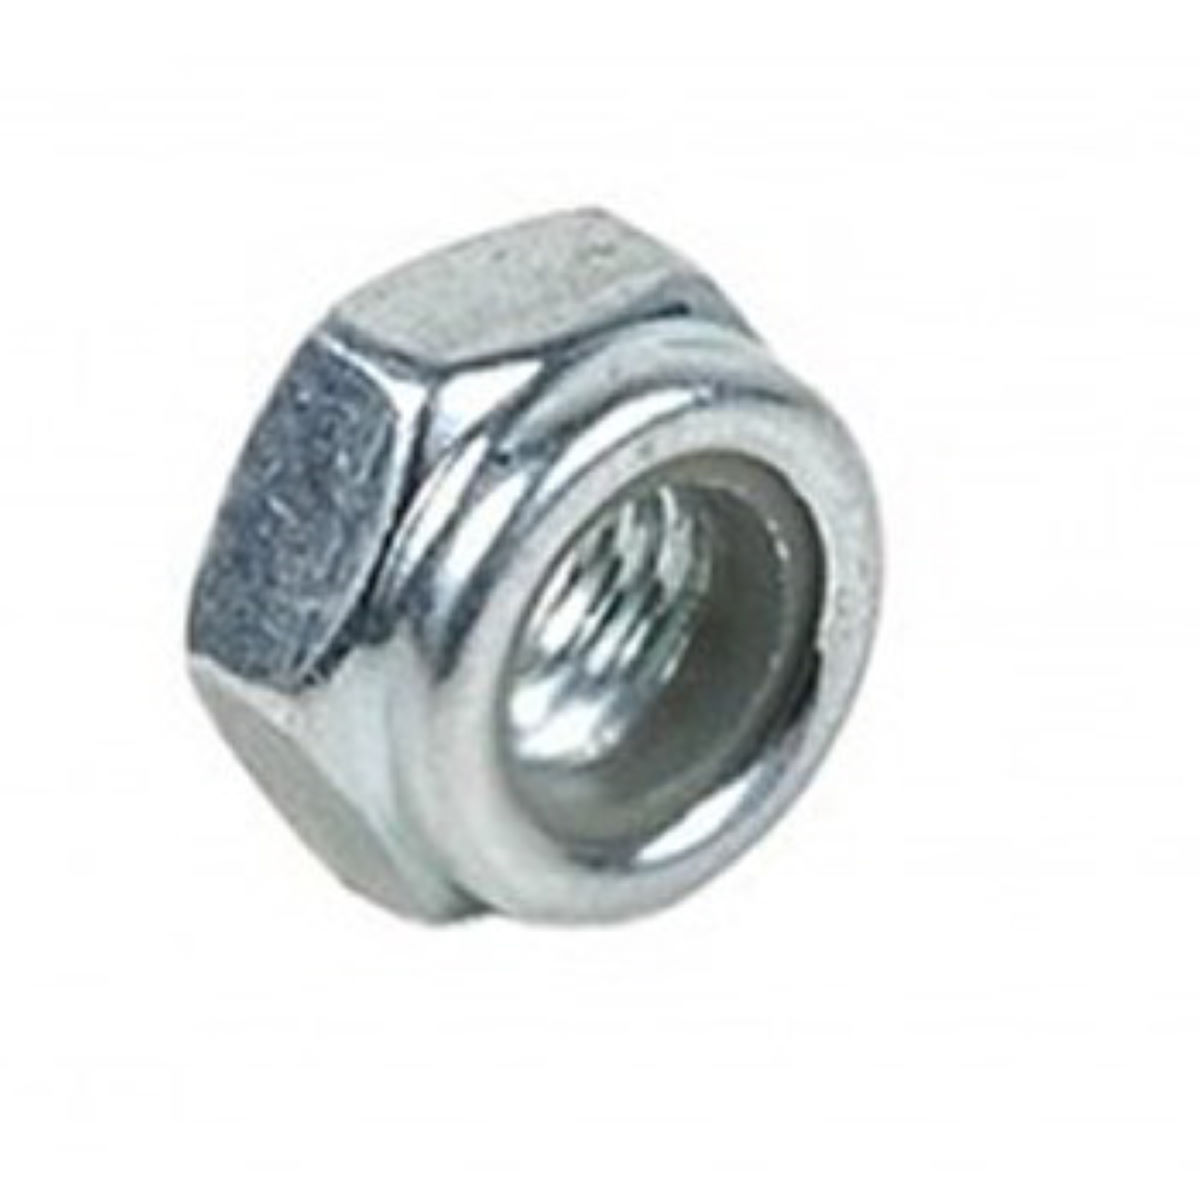 Sixpack Racing Vertic/icon Axle Nut - 5mm Right Silver  Pedal Spares